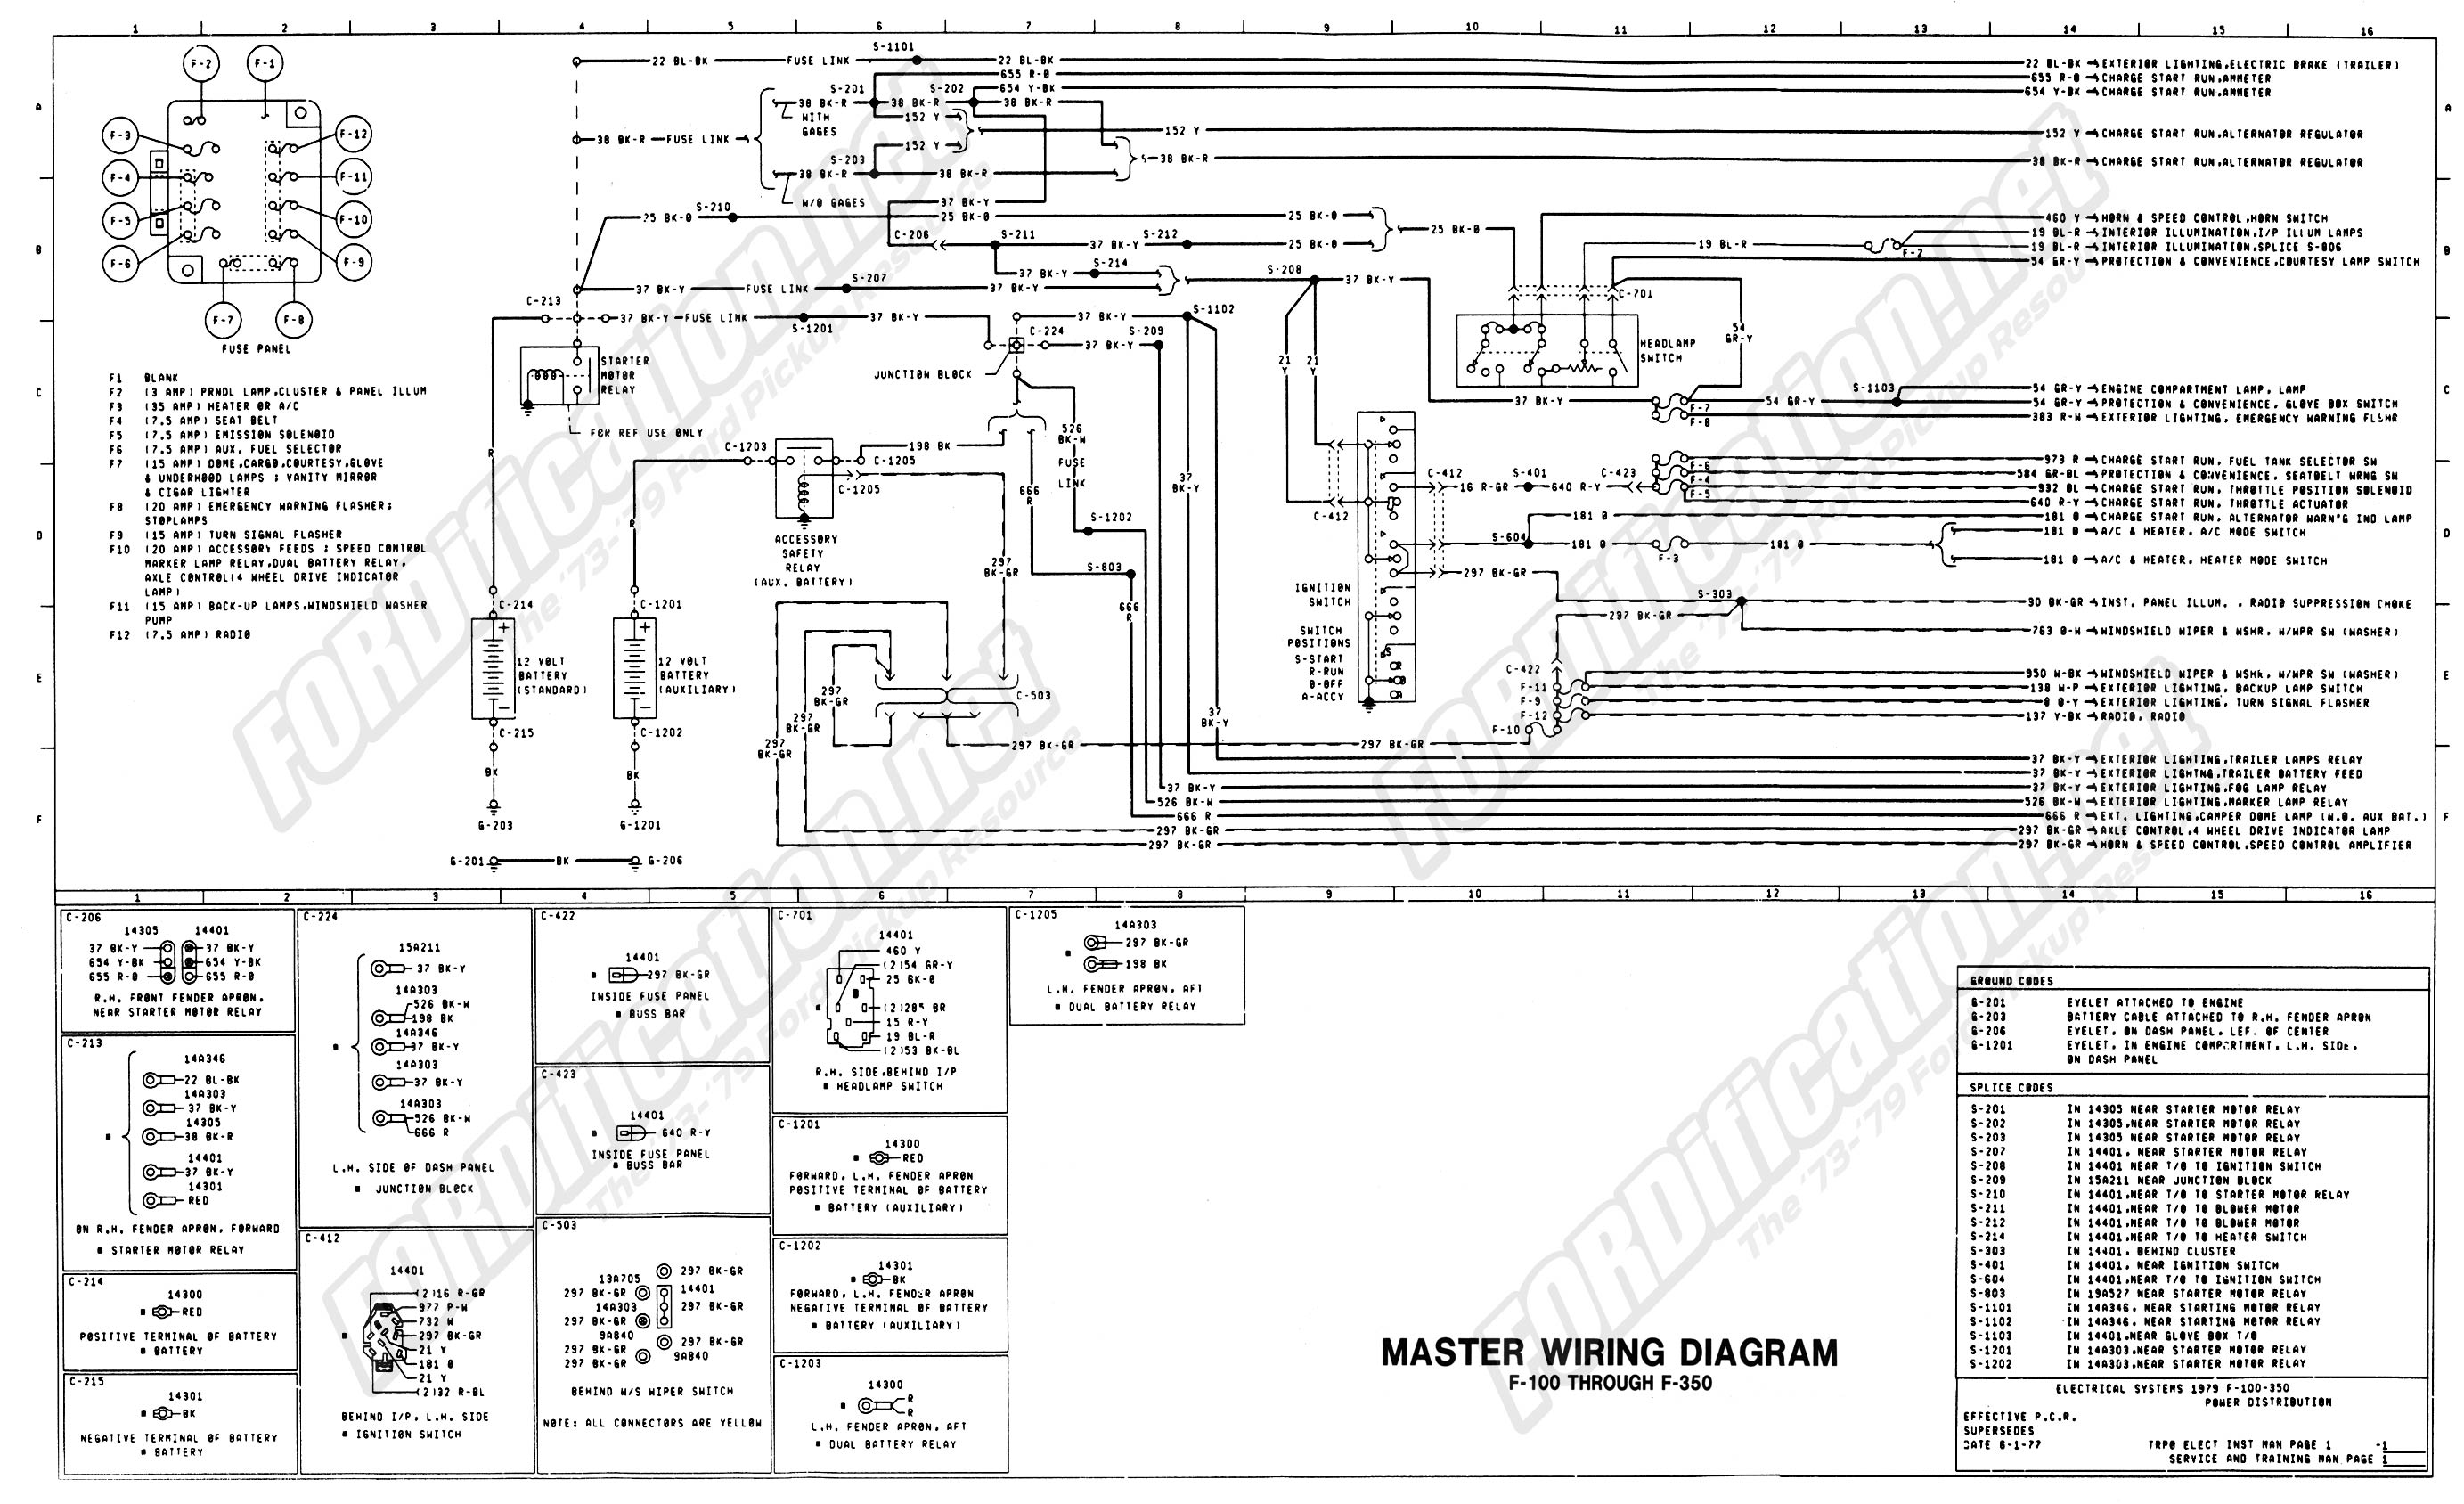 wiring_79master_1of9 1973 1979 ford truck wiring diagrams & schematics fordification net 1979 ford f100 fuse box diagram at couponss.co